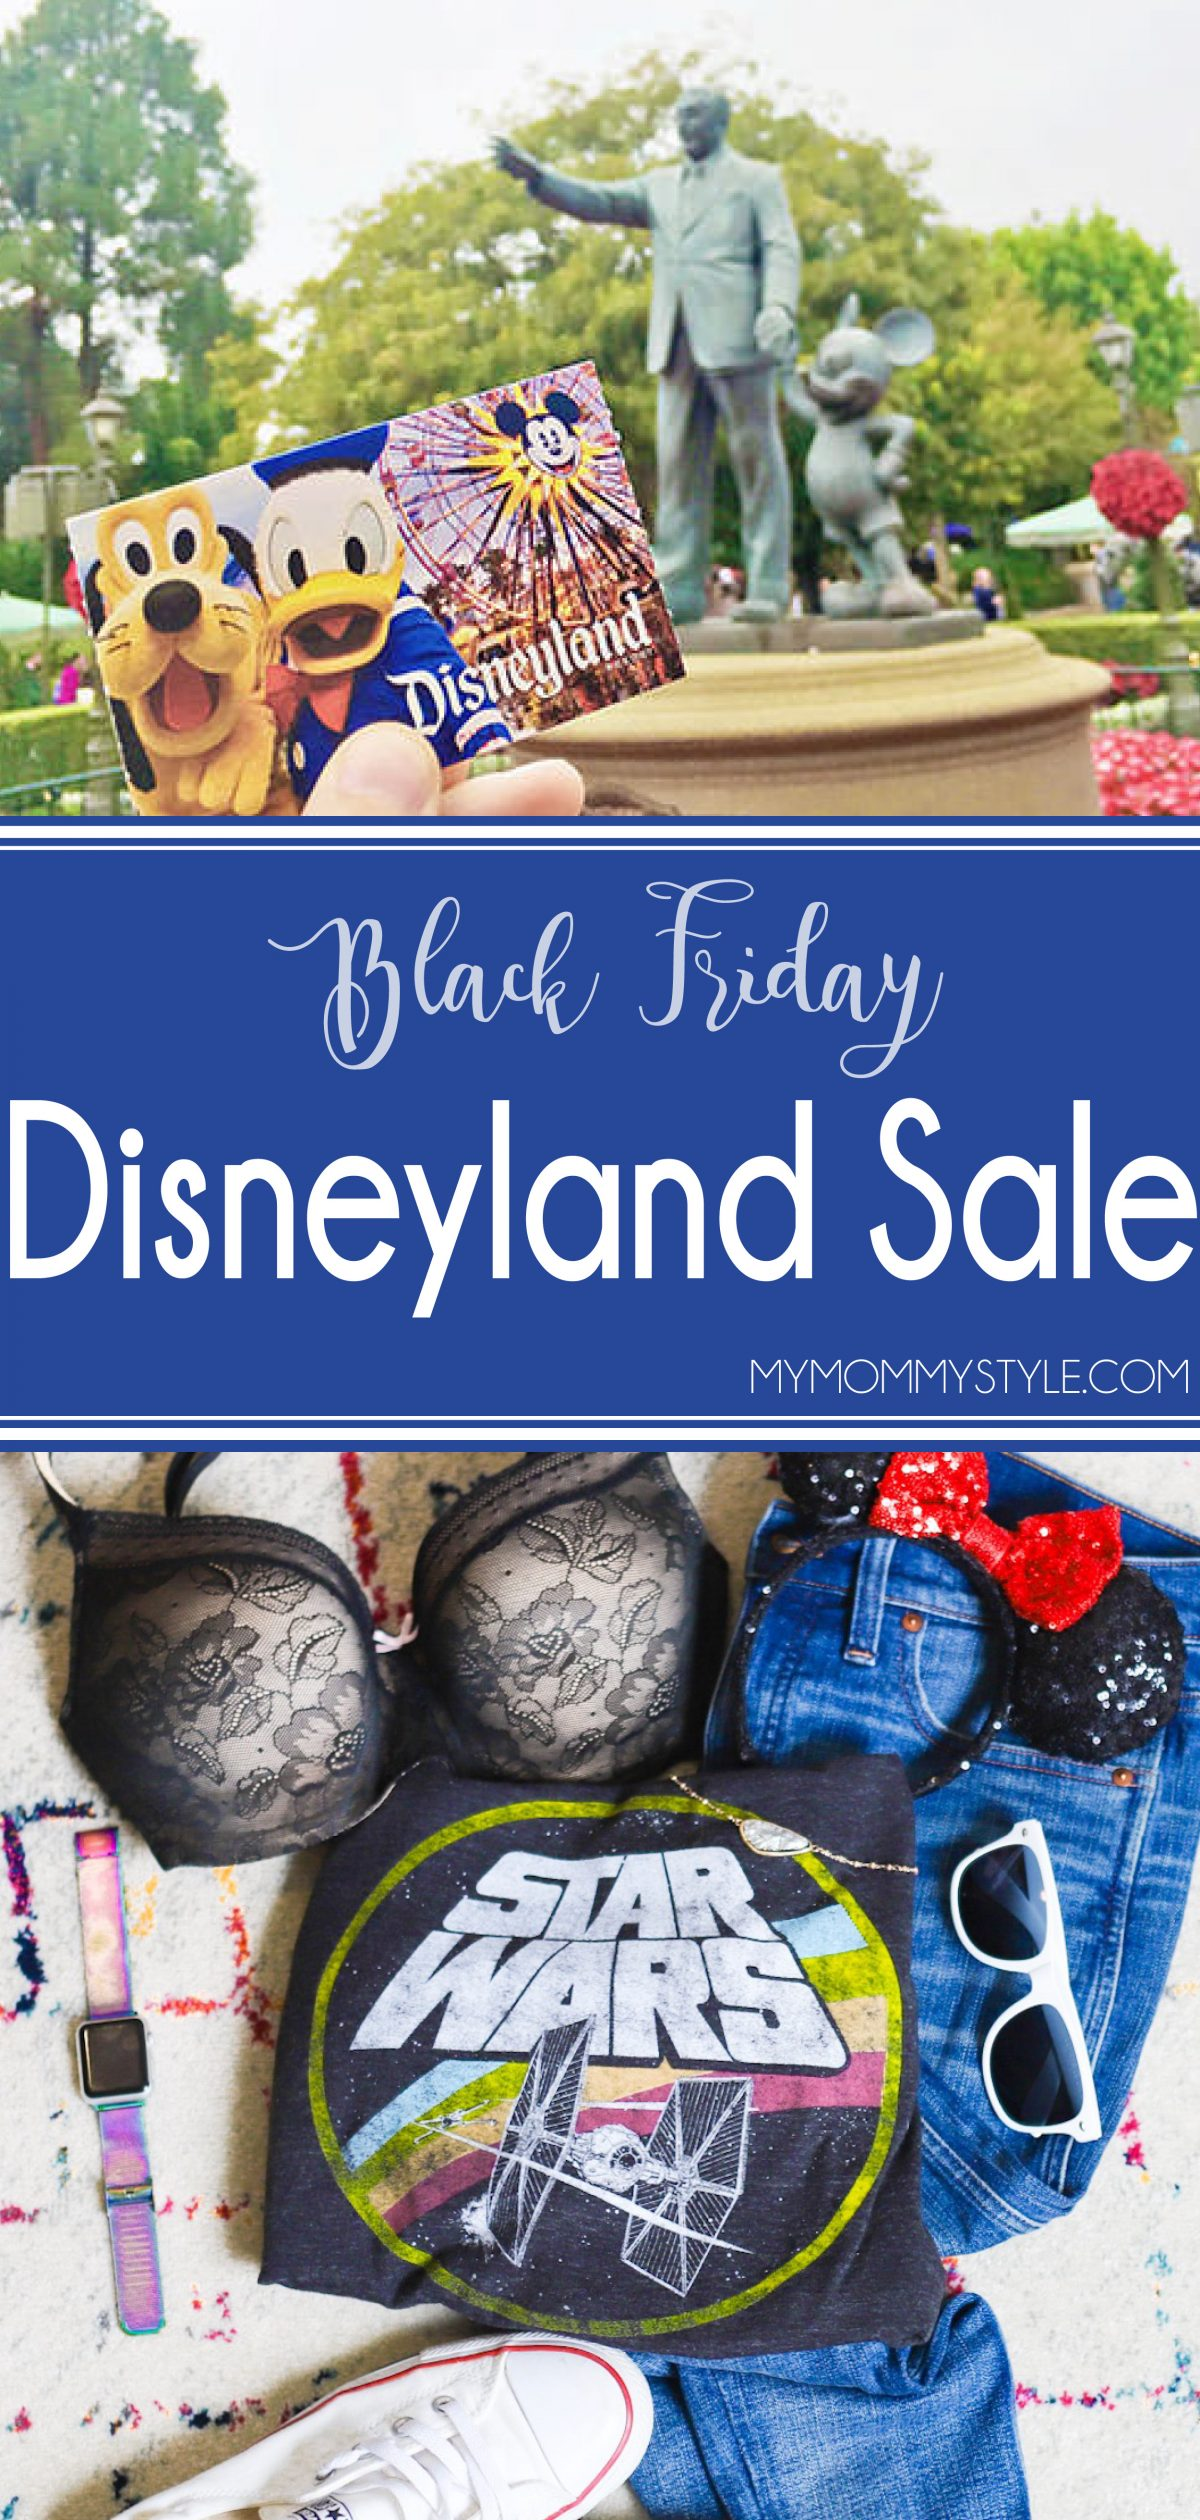 Right now, you can give the gift of a vacation to your family and save big during the Get Away Today Black Friday sale. via @mymommystyle